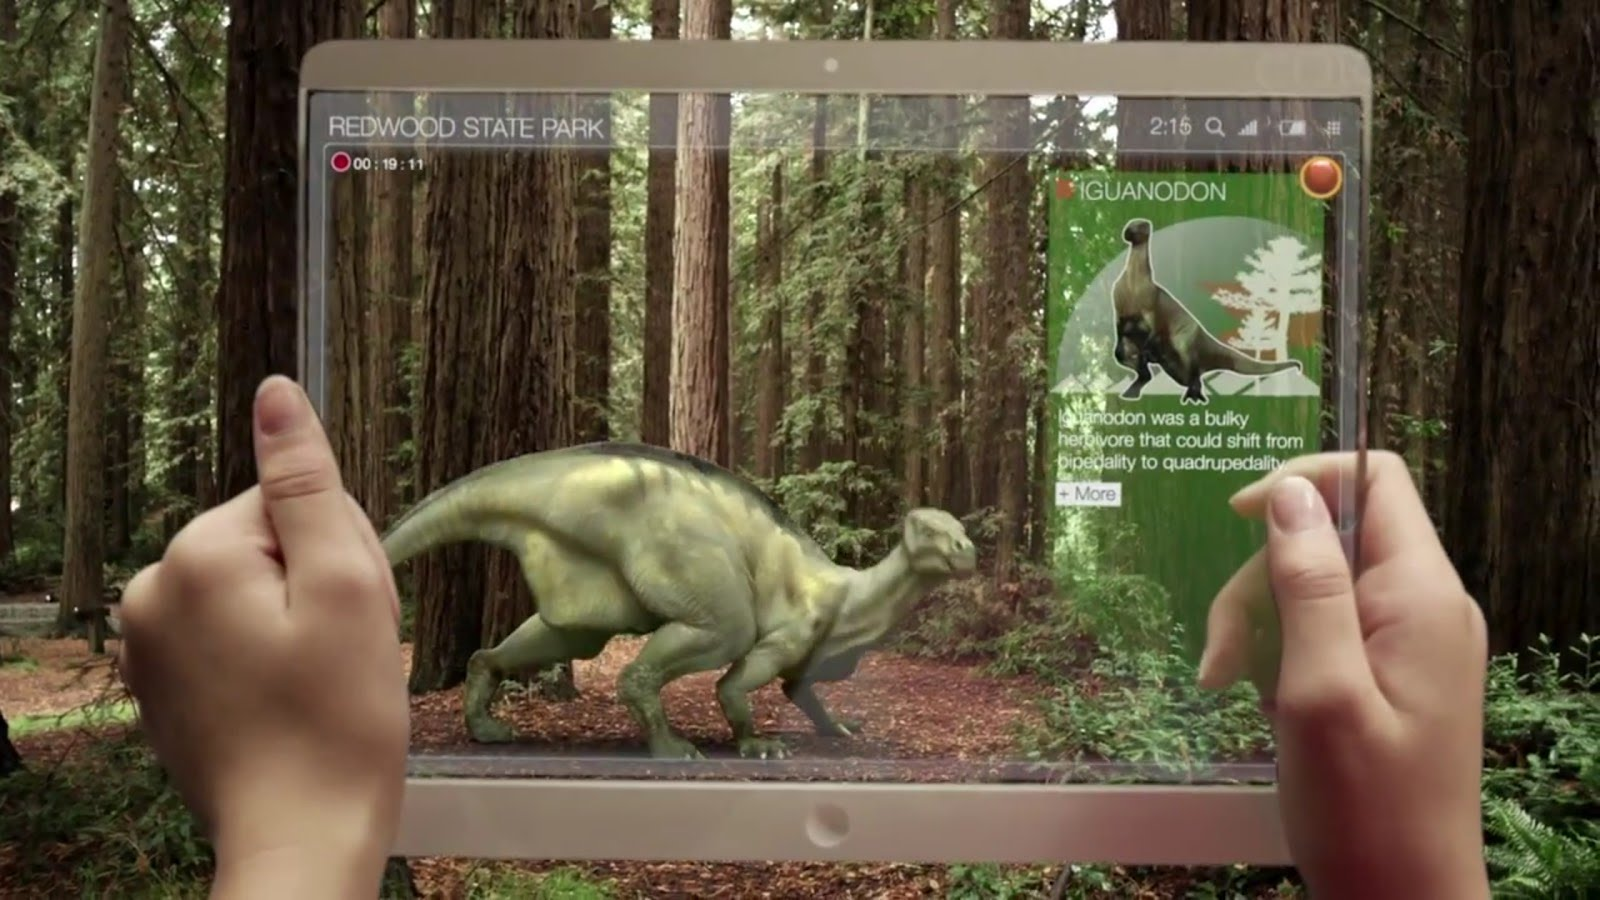 Iguanadon, Augmented Reality Trends - http://tinyurl.com/gn94jhl